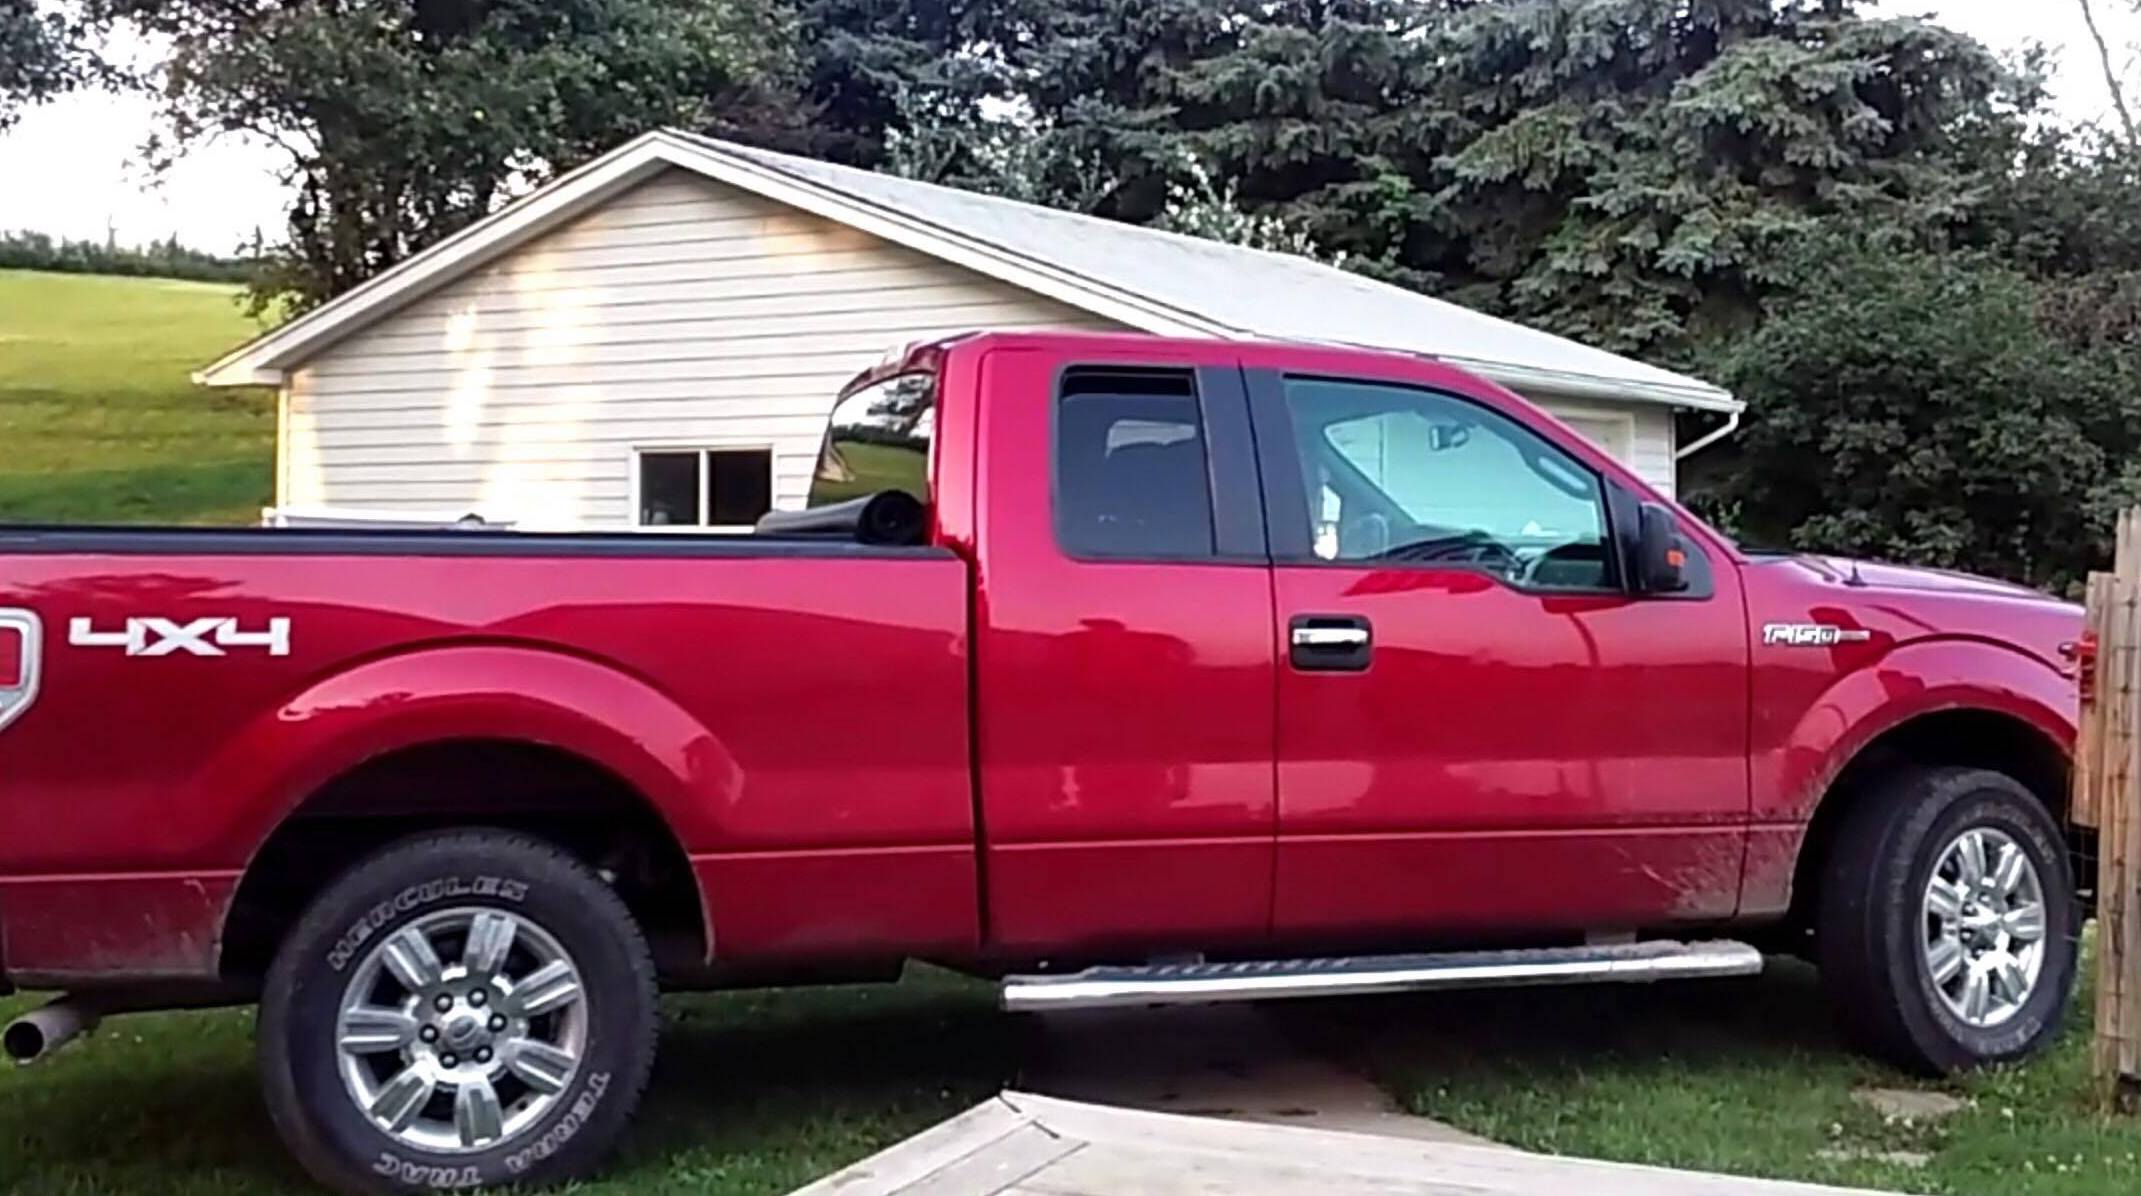 RECOVERED Red 2012 Ford F150 pickup from Leeds in Sioux City overnight Saturday